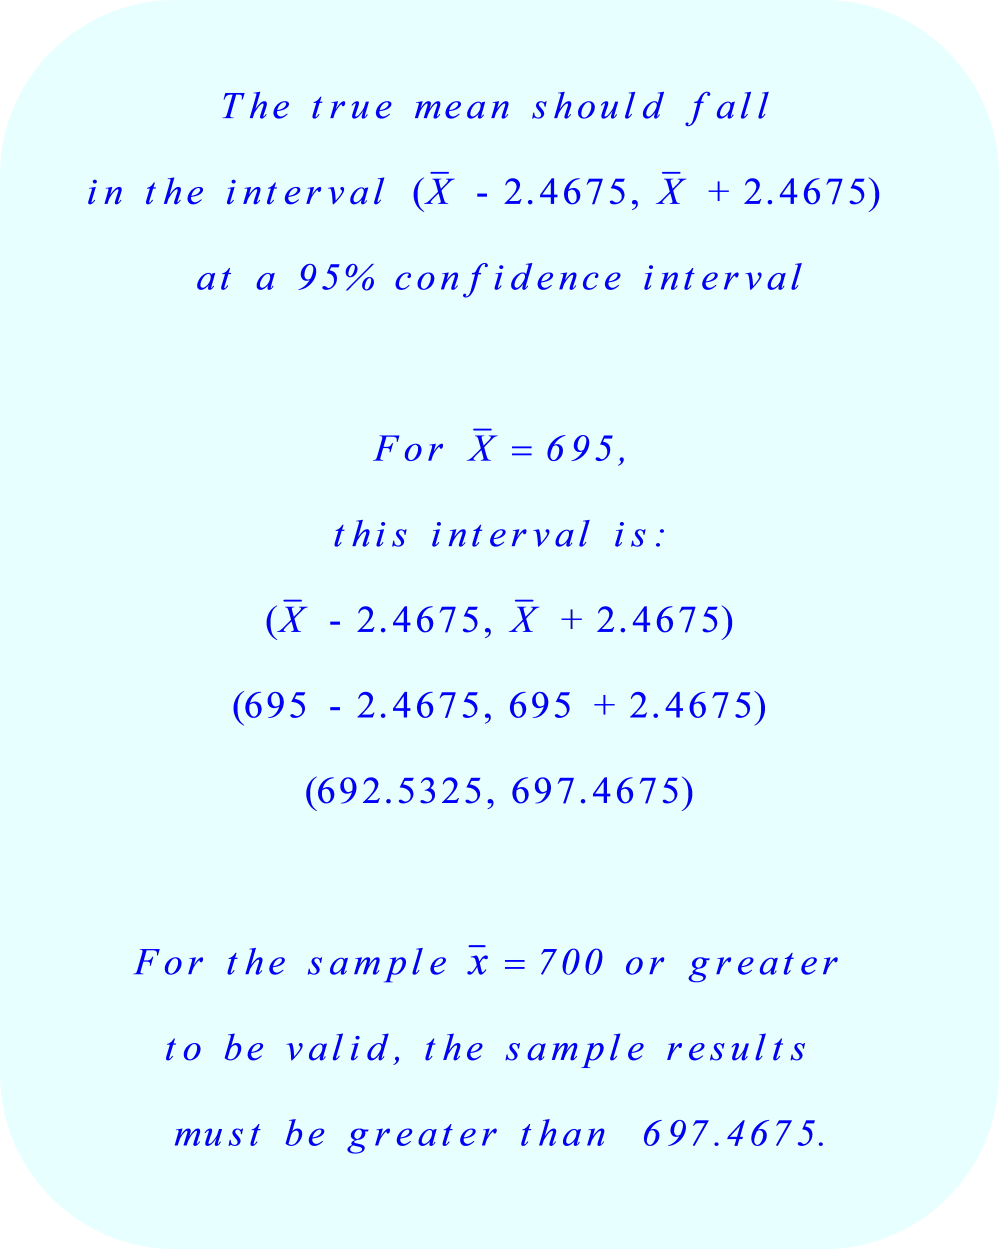 At a 95% confidence interval, the true mean should fall within the interval (X̄ - 2.4675, X̄ + 2.4675)